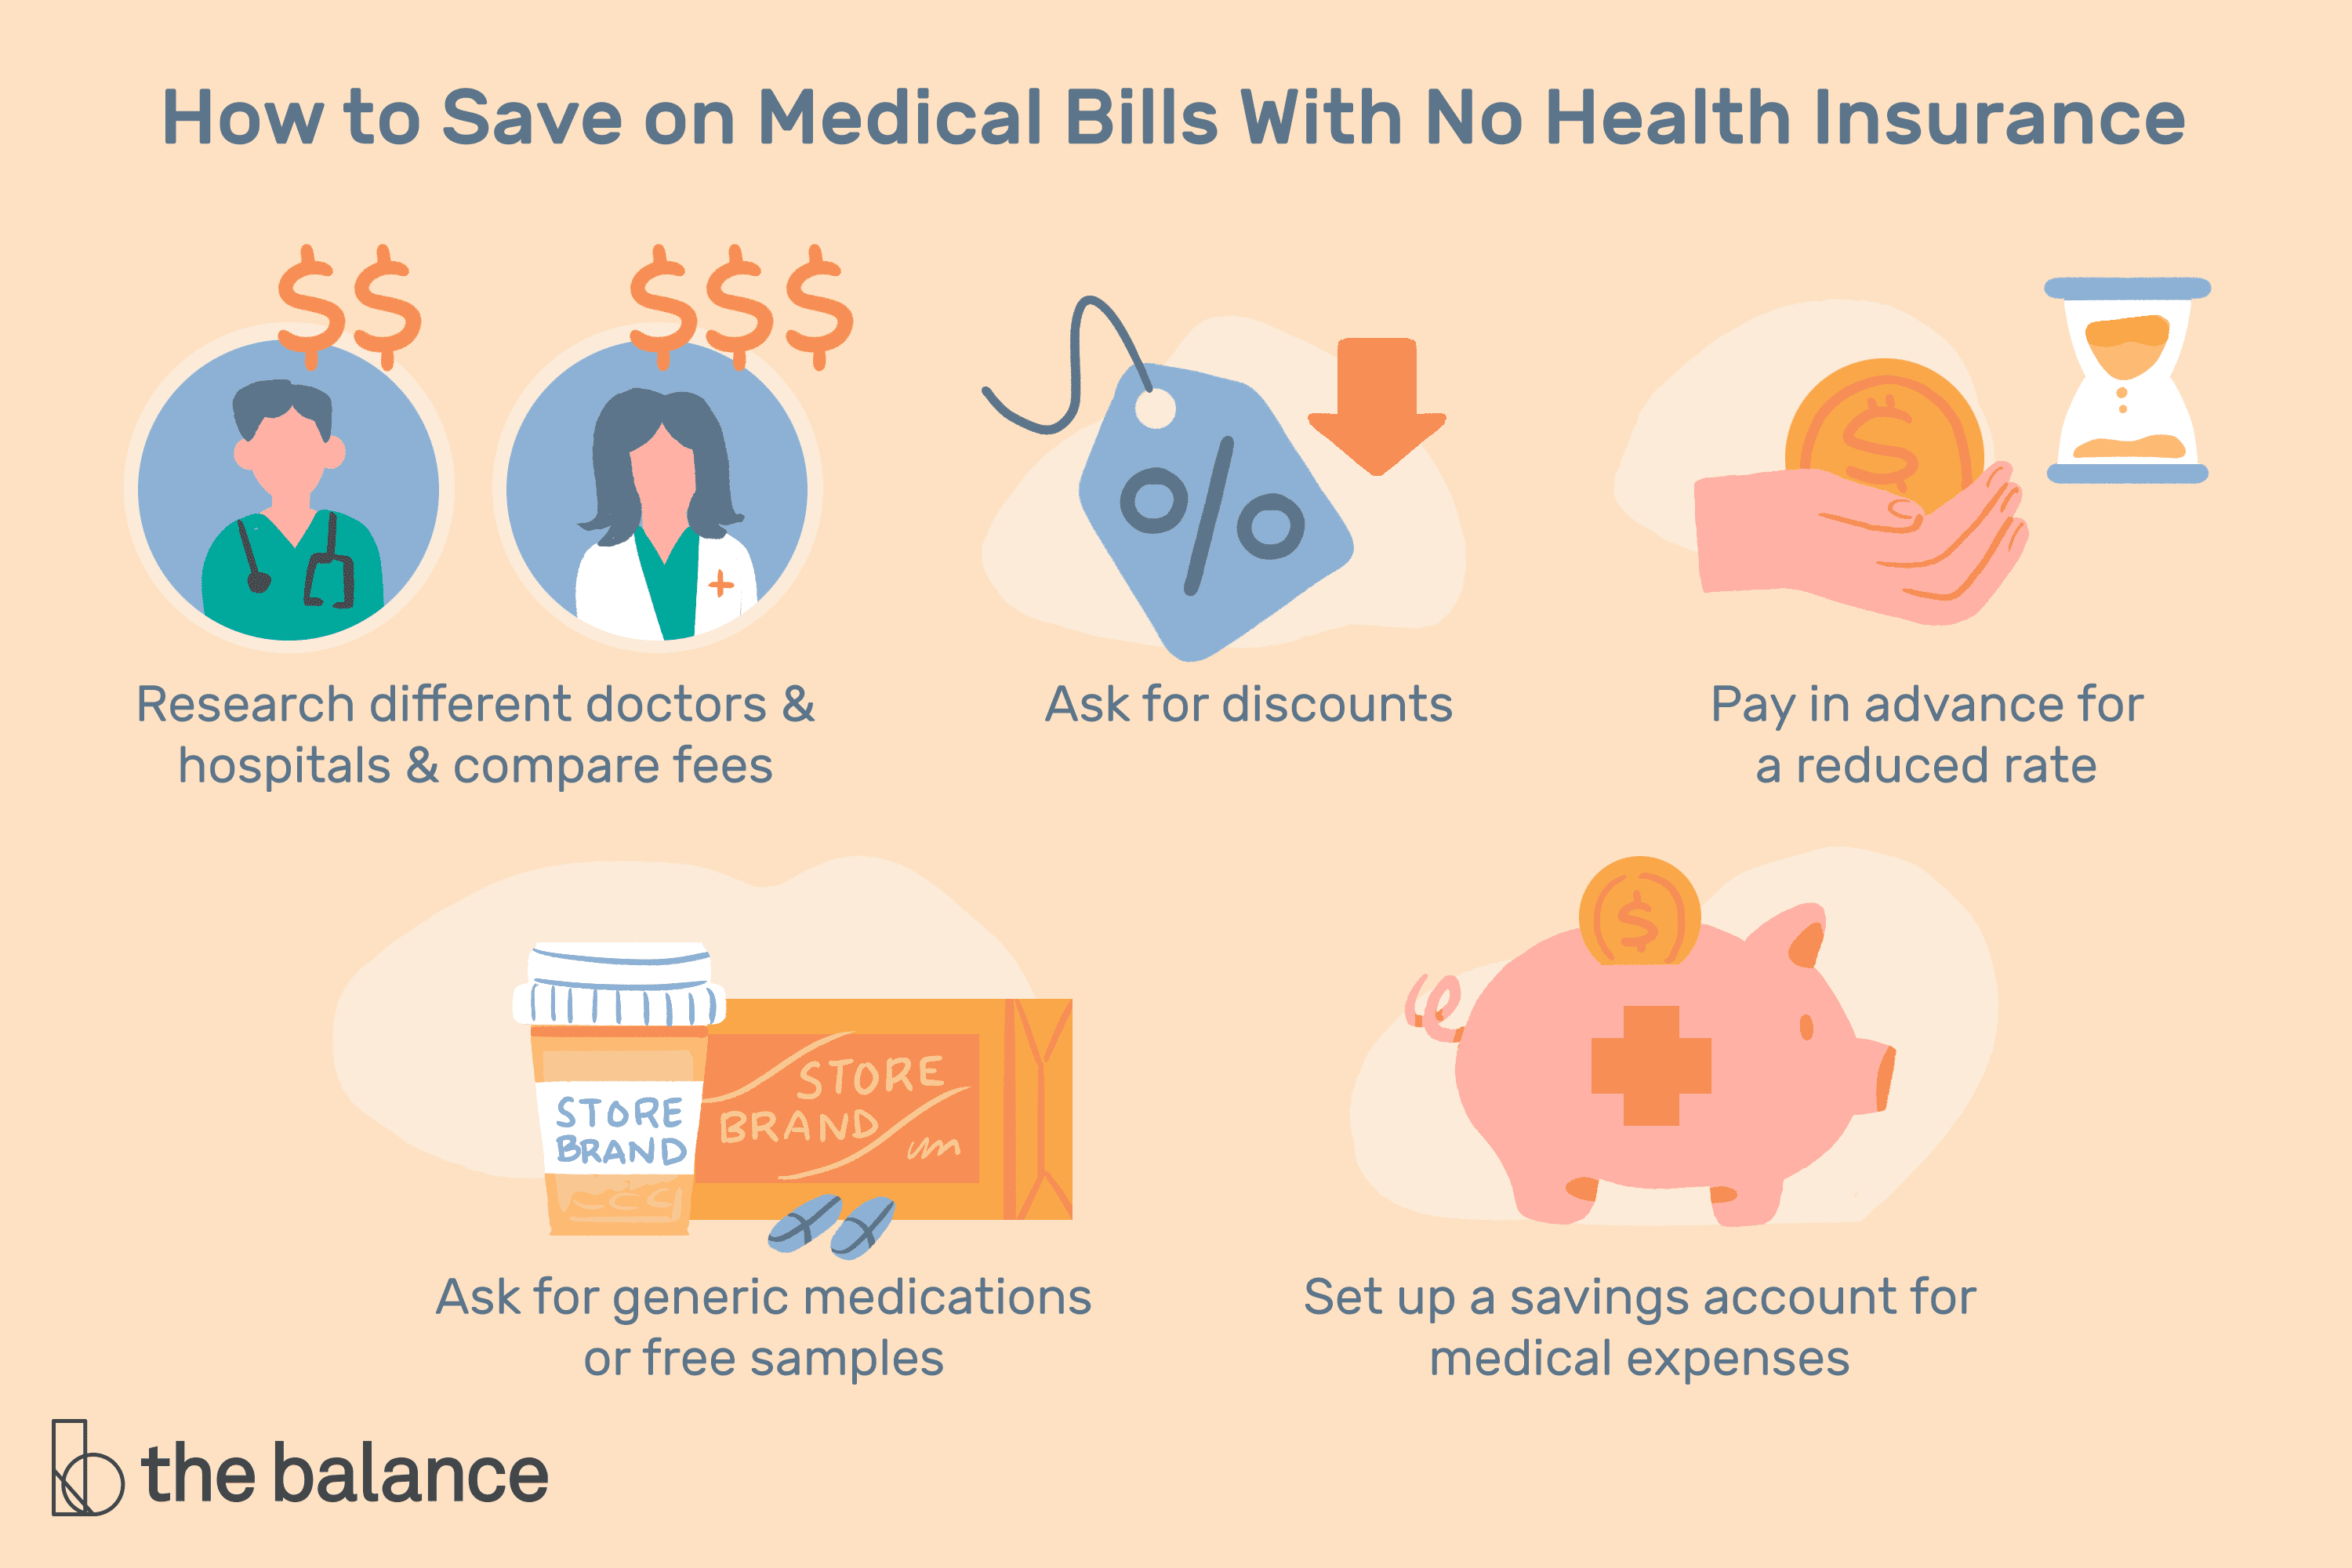 6 Ways To Pay Medical Bills With No Health Insurance